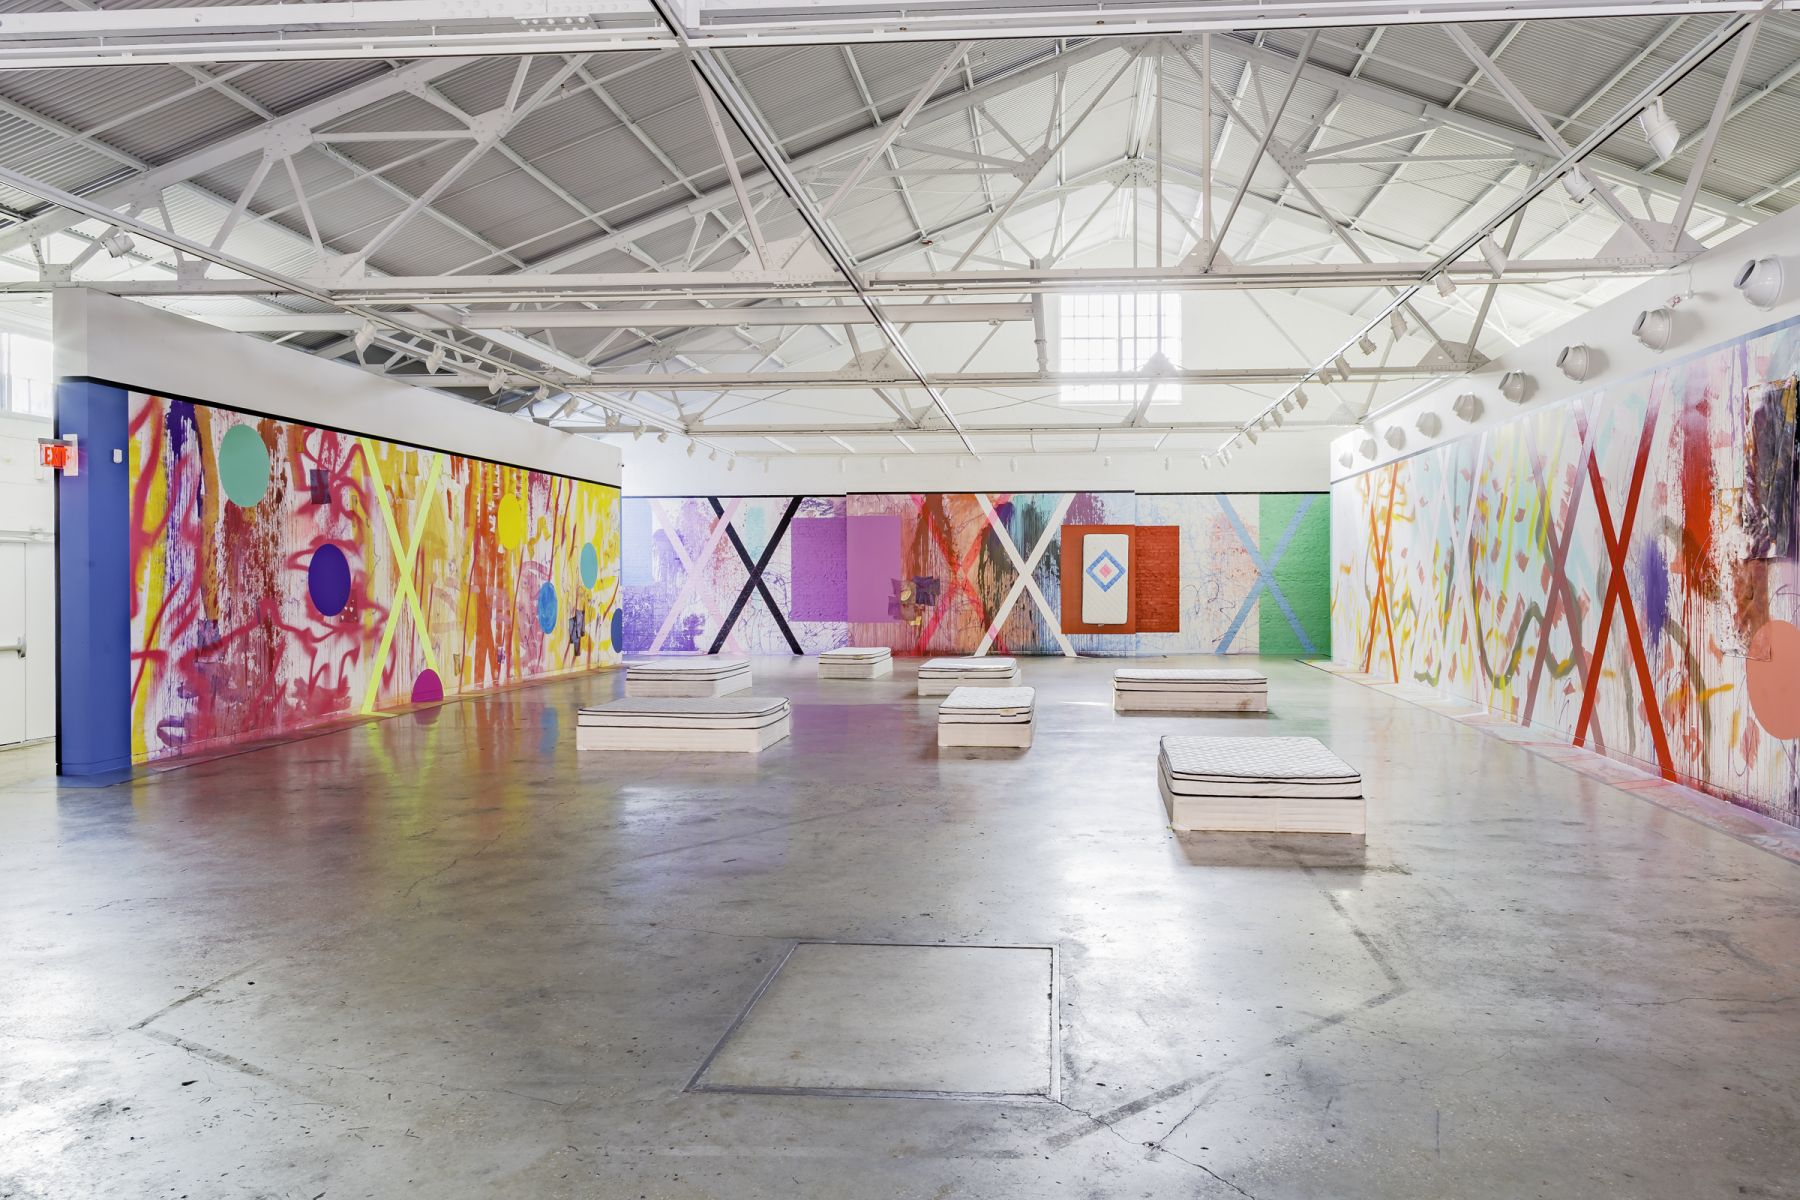 """ALT=""""Sarah Cain, Installation view of The Imaginary Architecture of Love, 2015, Wall mural in large museum exhibition space"""""""